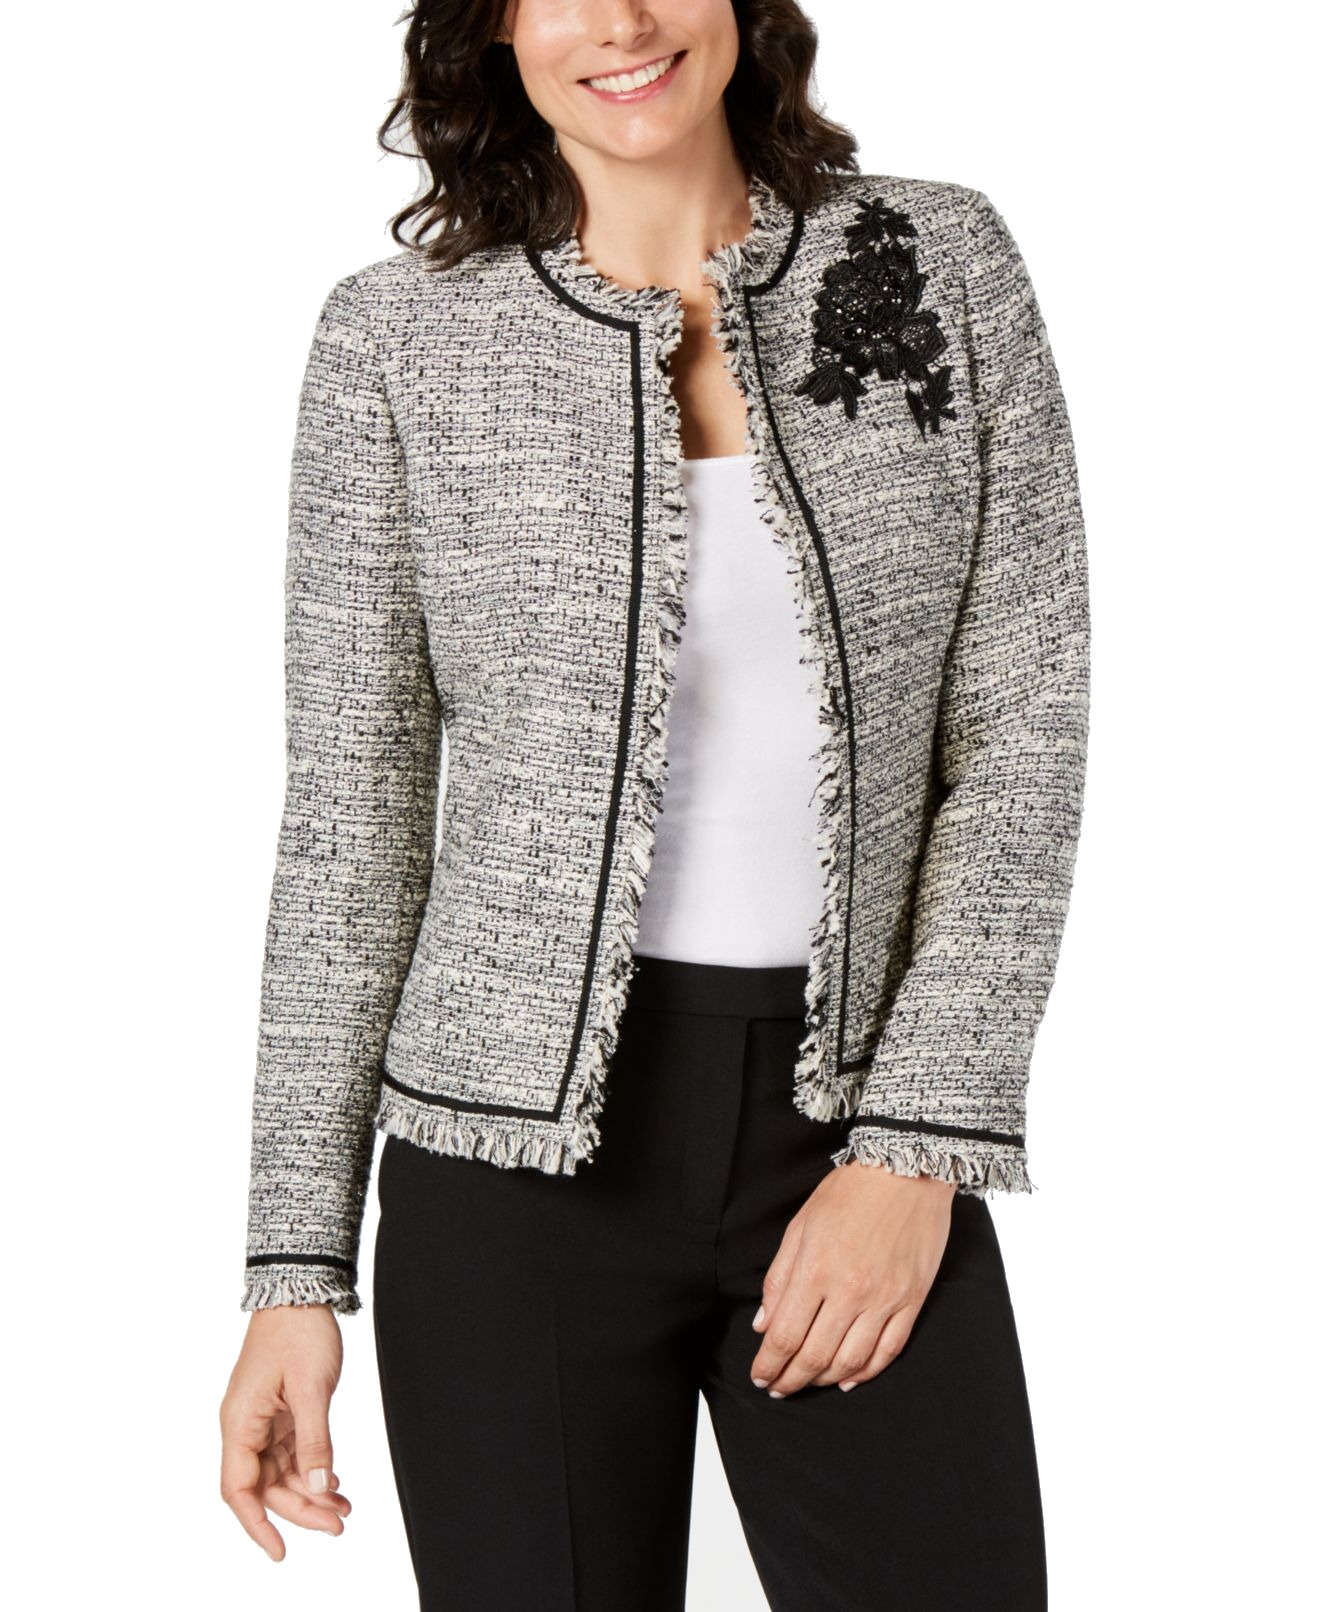 Kasper Womens Jewel Neck Stretch Tiny Check Tweed Jacket with Piping